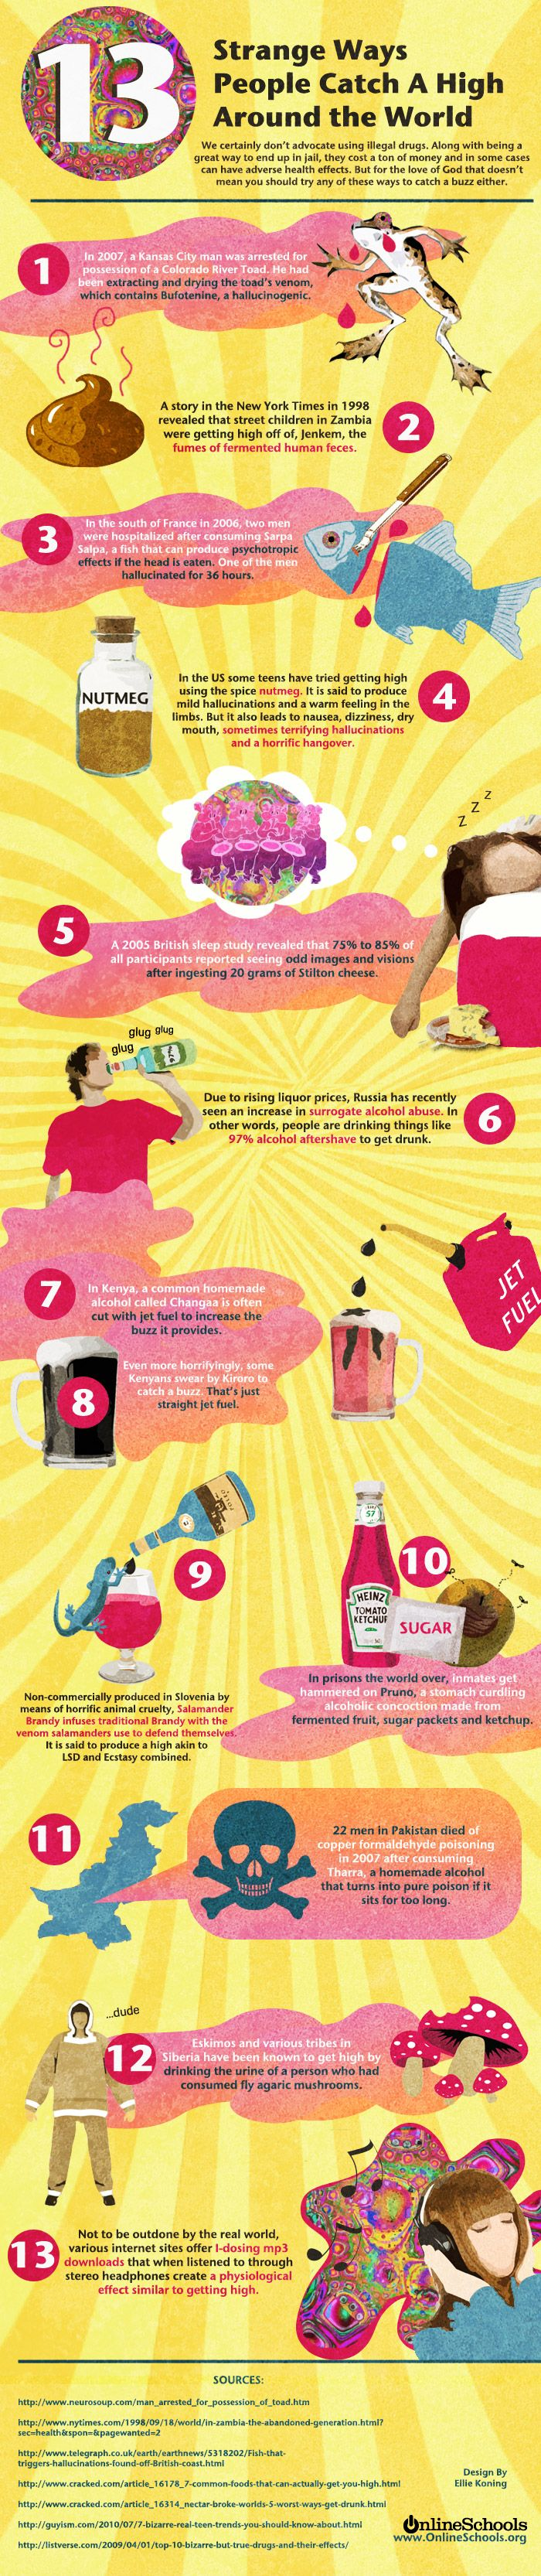 13 Strange Highs from Around the World (infographic)